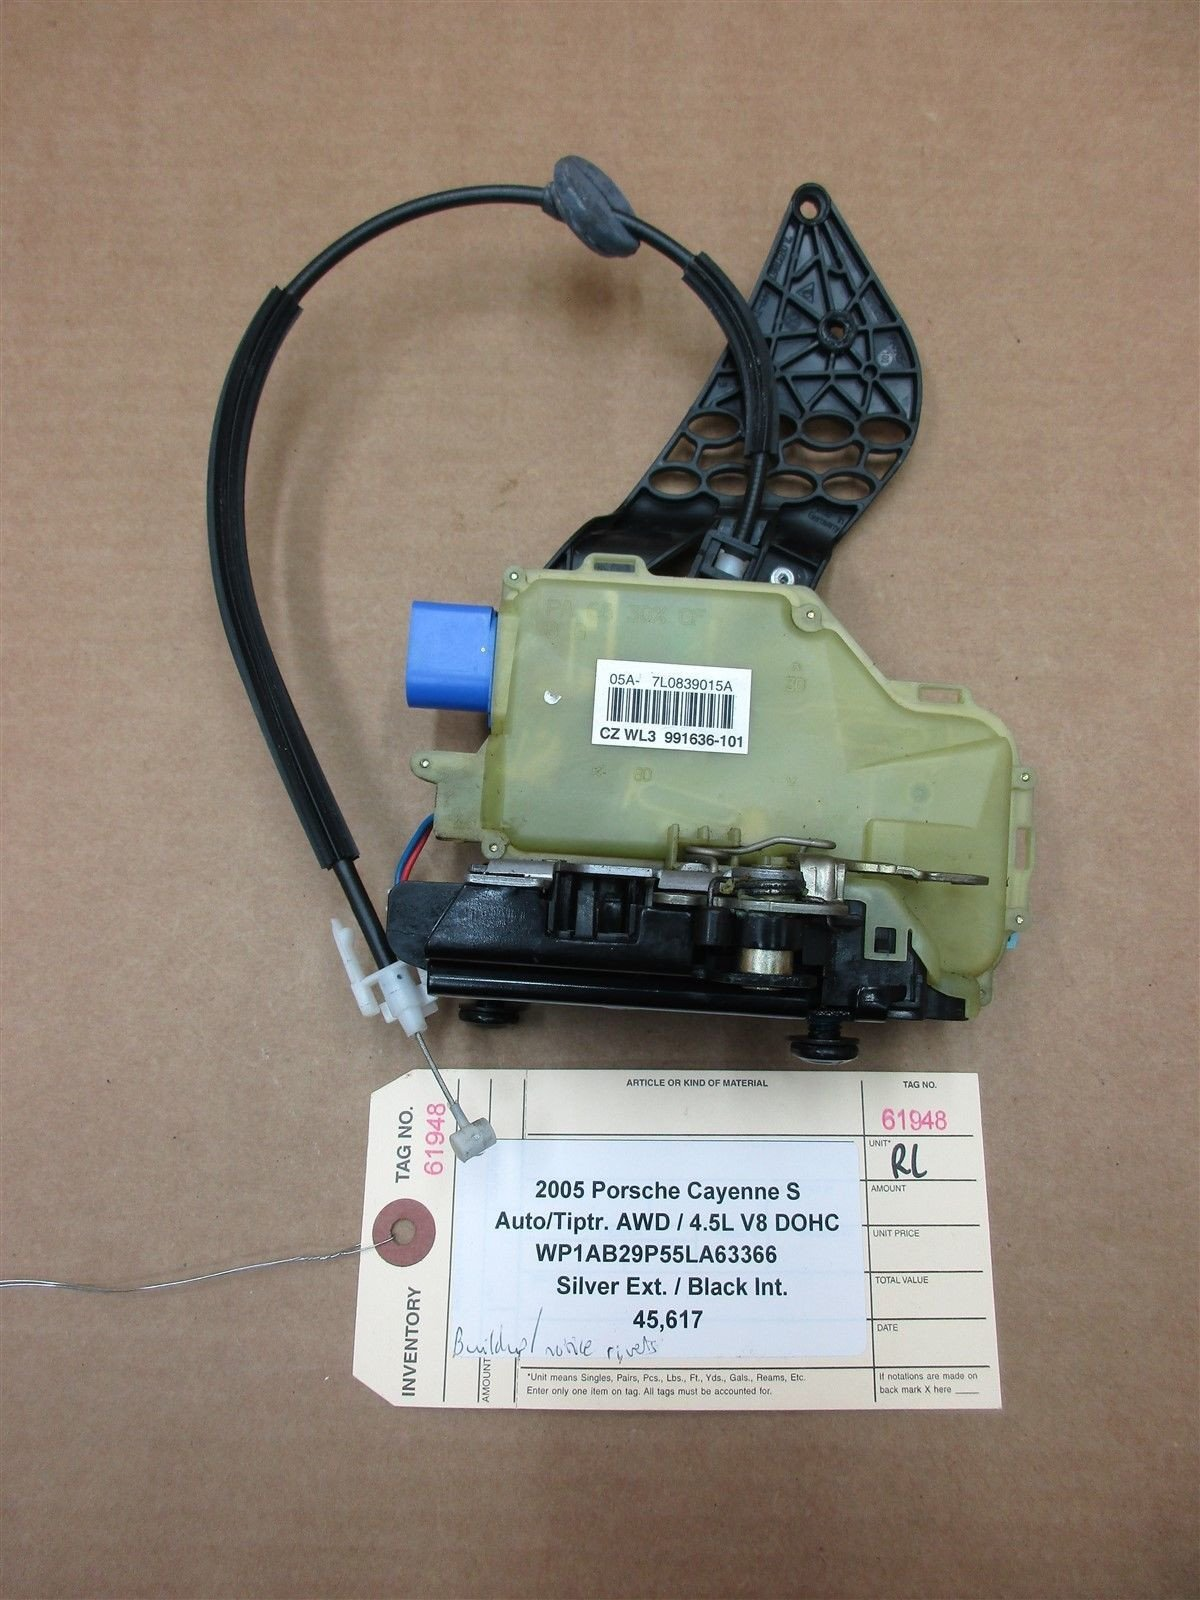 05 Cayenne S AWD Porsche 955 L REAR DOOR Lock Latch ACTUATOR 7L0839015A 45,617